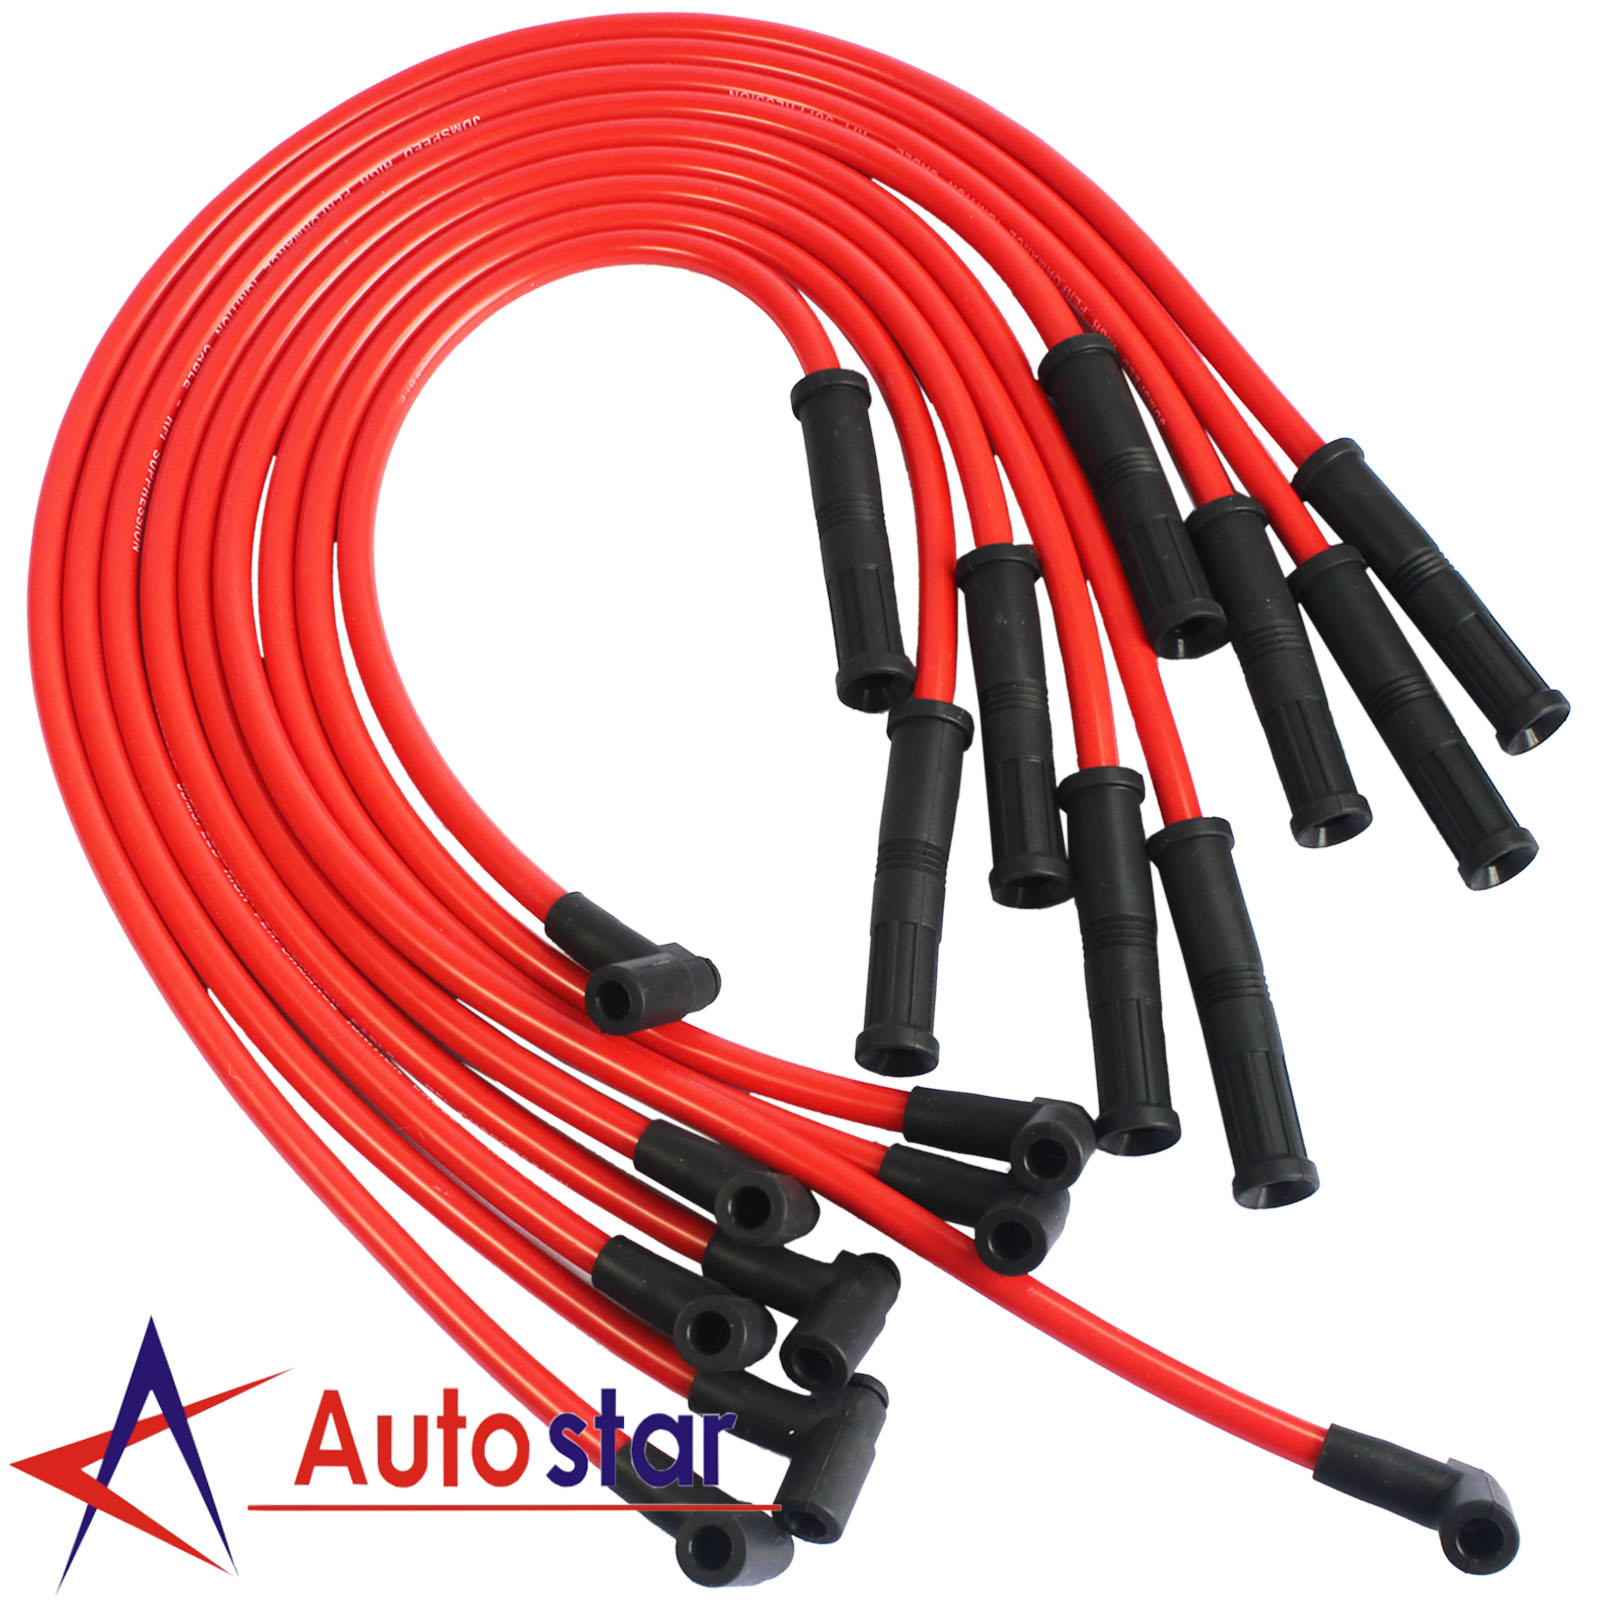 hei spark plug wires set 90 to straight for chevy bbc sbc 350 383, Wiring diagram